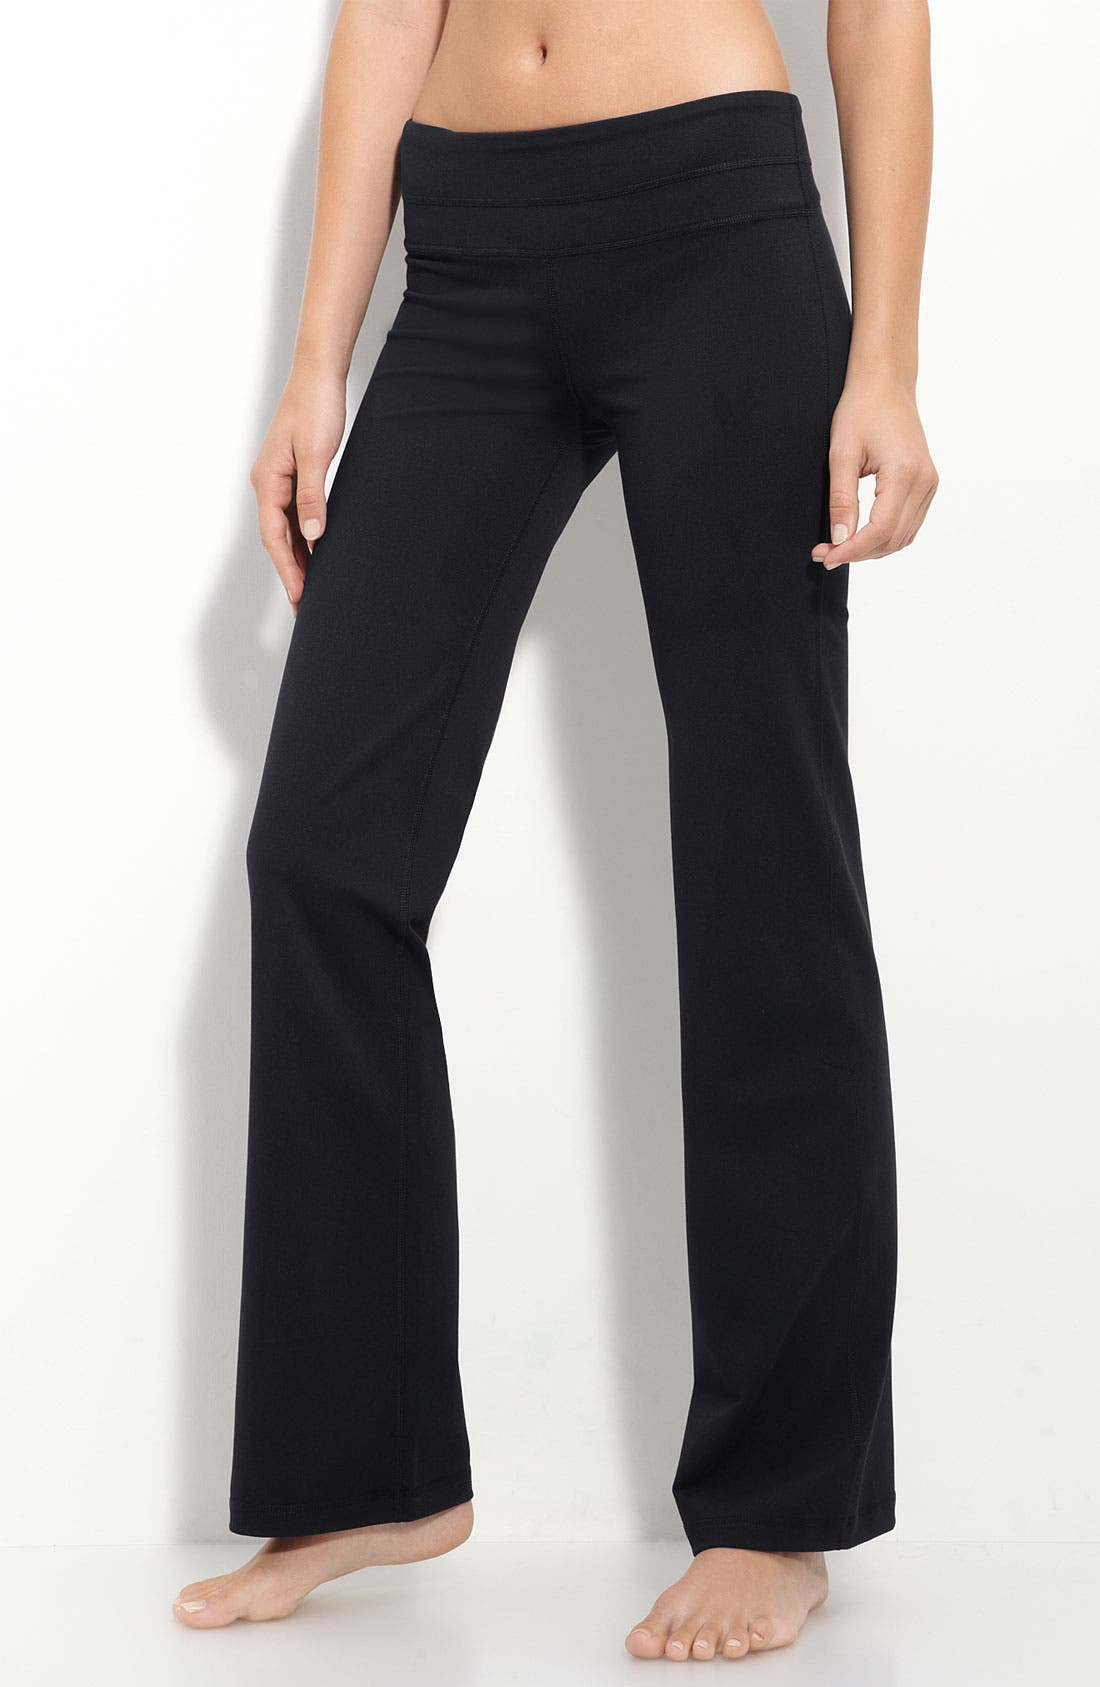 Main Image - Zella 'Booty' Pants (Regular & Long)